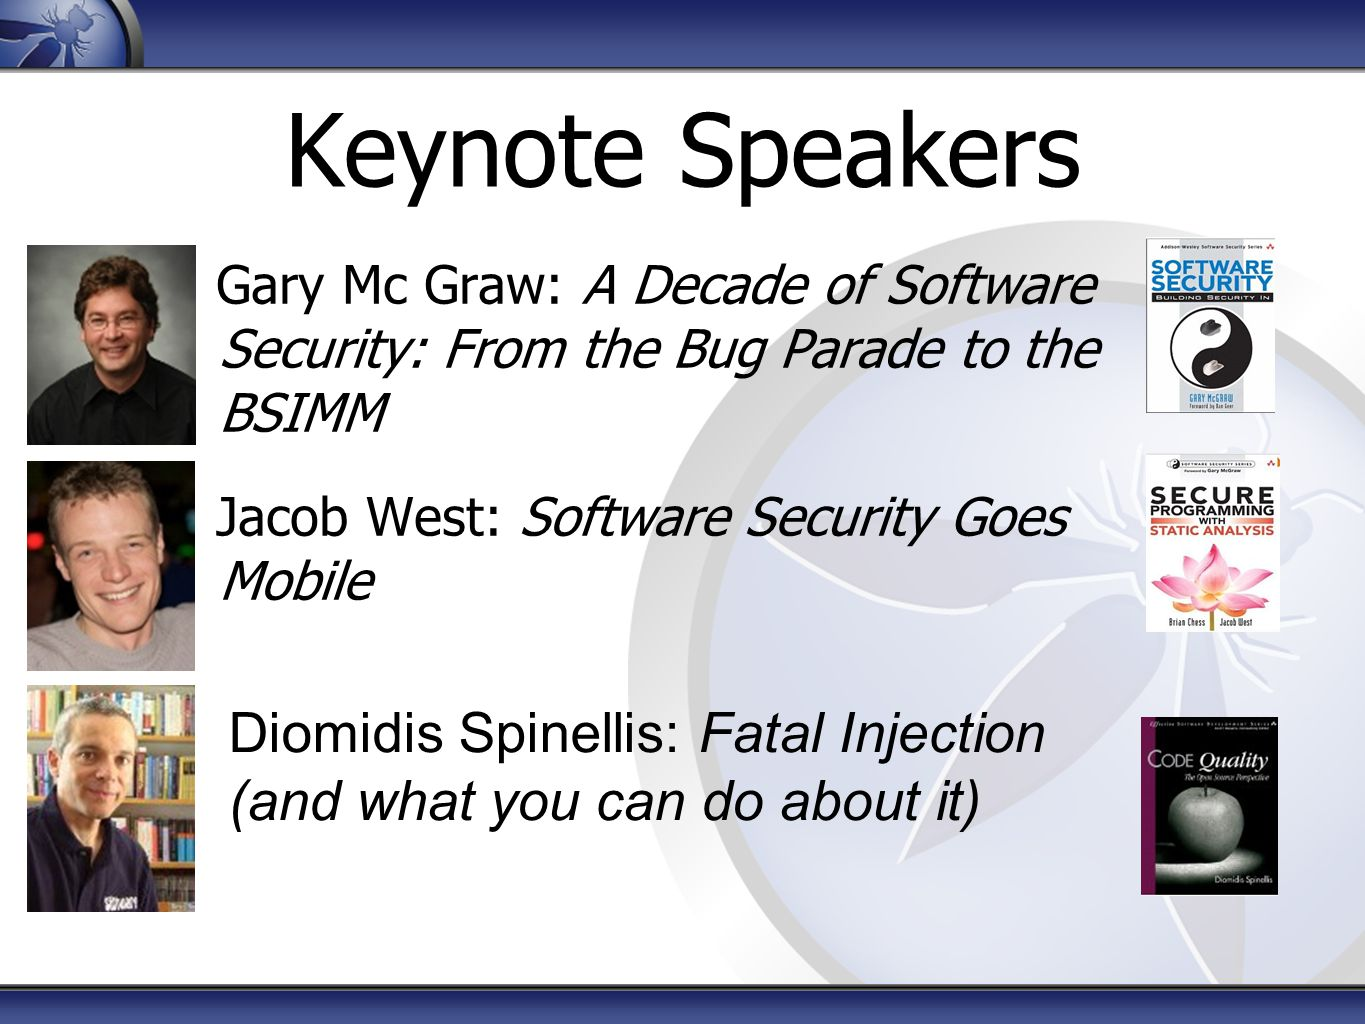 Keynote Speakers Gary Mc Graw: A Decade of Software Security: From the Bug Parade to the BSIMM Jacob West: Software Security Goes Mobile Diomidis Spin